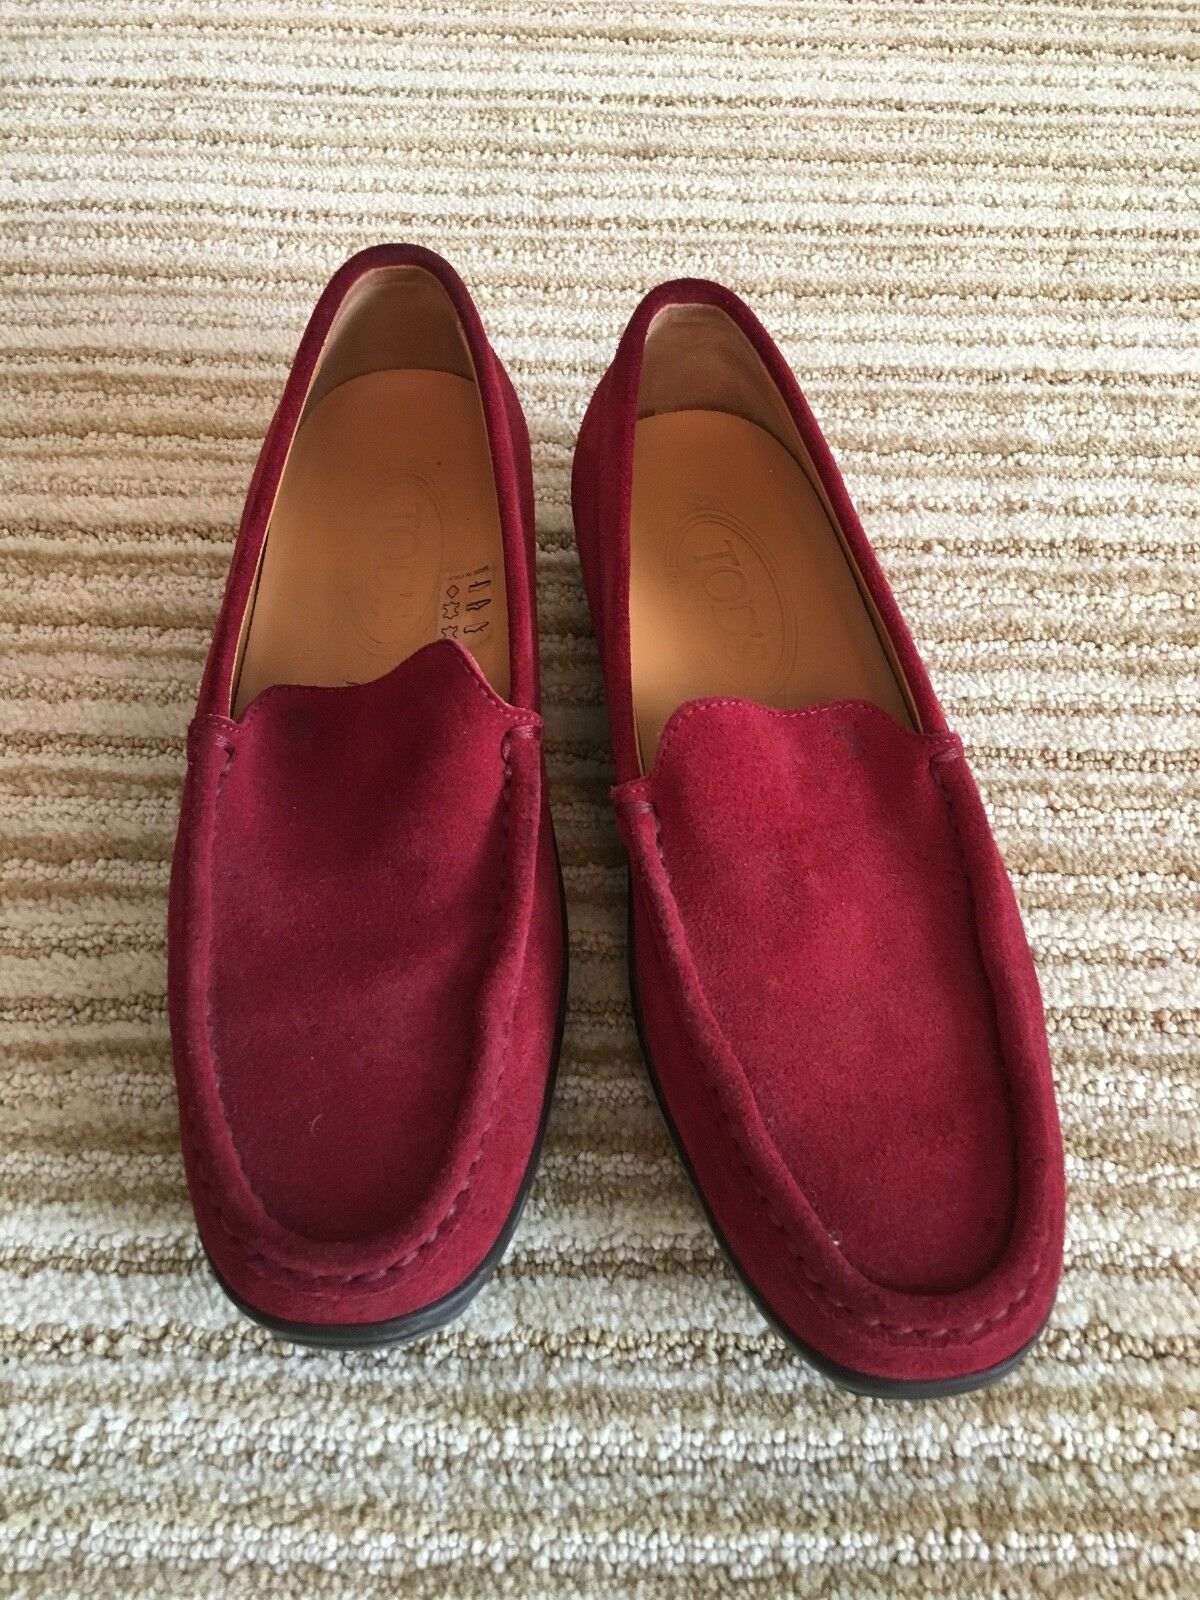 TOD'S GOMMINO Conduite Chaussures-Mocassins-rouge en daim-taille 9.5 - Made in